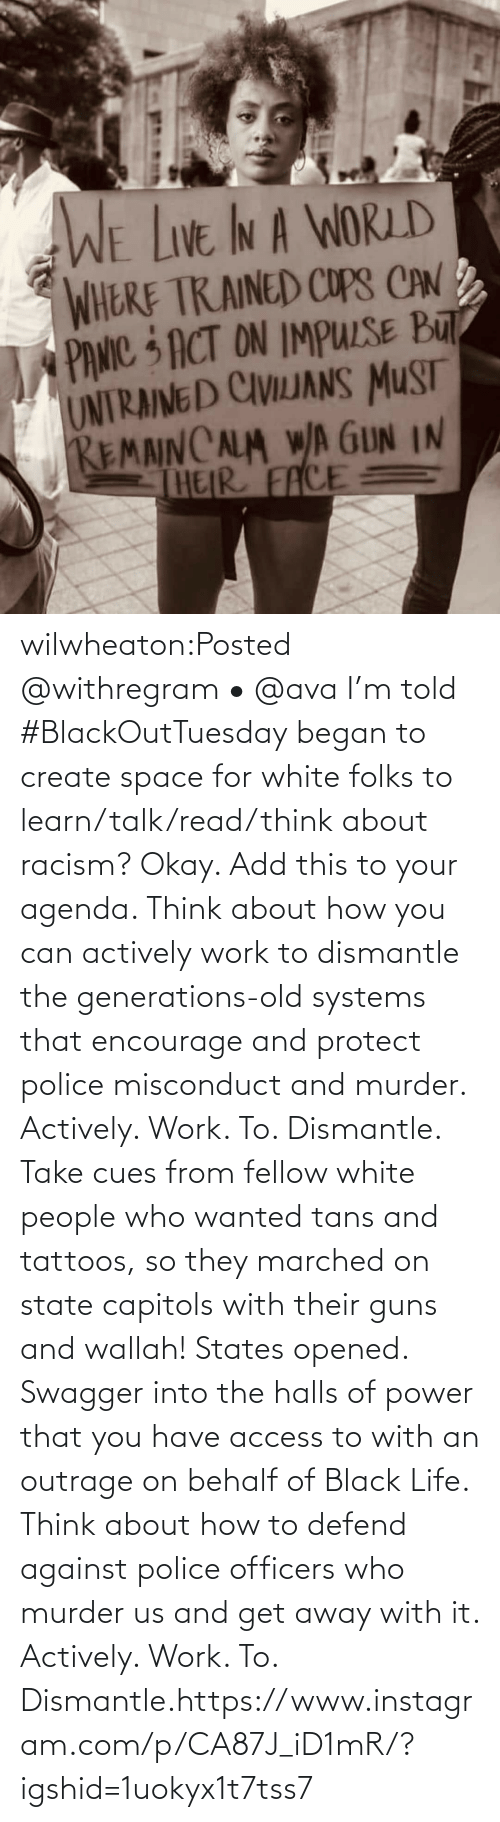 How To: wilwheaton:Posted @withregram • @ava I'm told #BlackOutTuesday began to create space for white folks to learn/talk/read/think about racism? Okay. Add this to your agenda. Think about how you can actively work to dismantle the generations-old systems that encourage and protect police misconduct and murder. Actively. Work. To. Dismantle. Take cues from fellow white people who wanted tans and tattoos, so they marched on state capitols with their guns and wallah! States opened. Swagger into the halls of power that you have access to with an outrage on behalf of Black Life. Think about how to defend against police officers who murder us and get away with it. Actively. Work. To. Dismantle.https://www.instagram.com/p/CA87J_iD1mR/?igshid=1uokyx1t7tss7